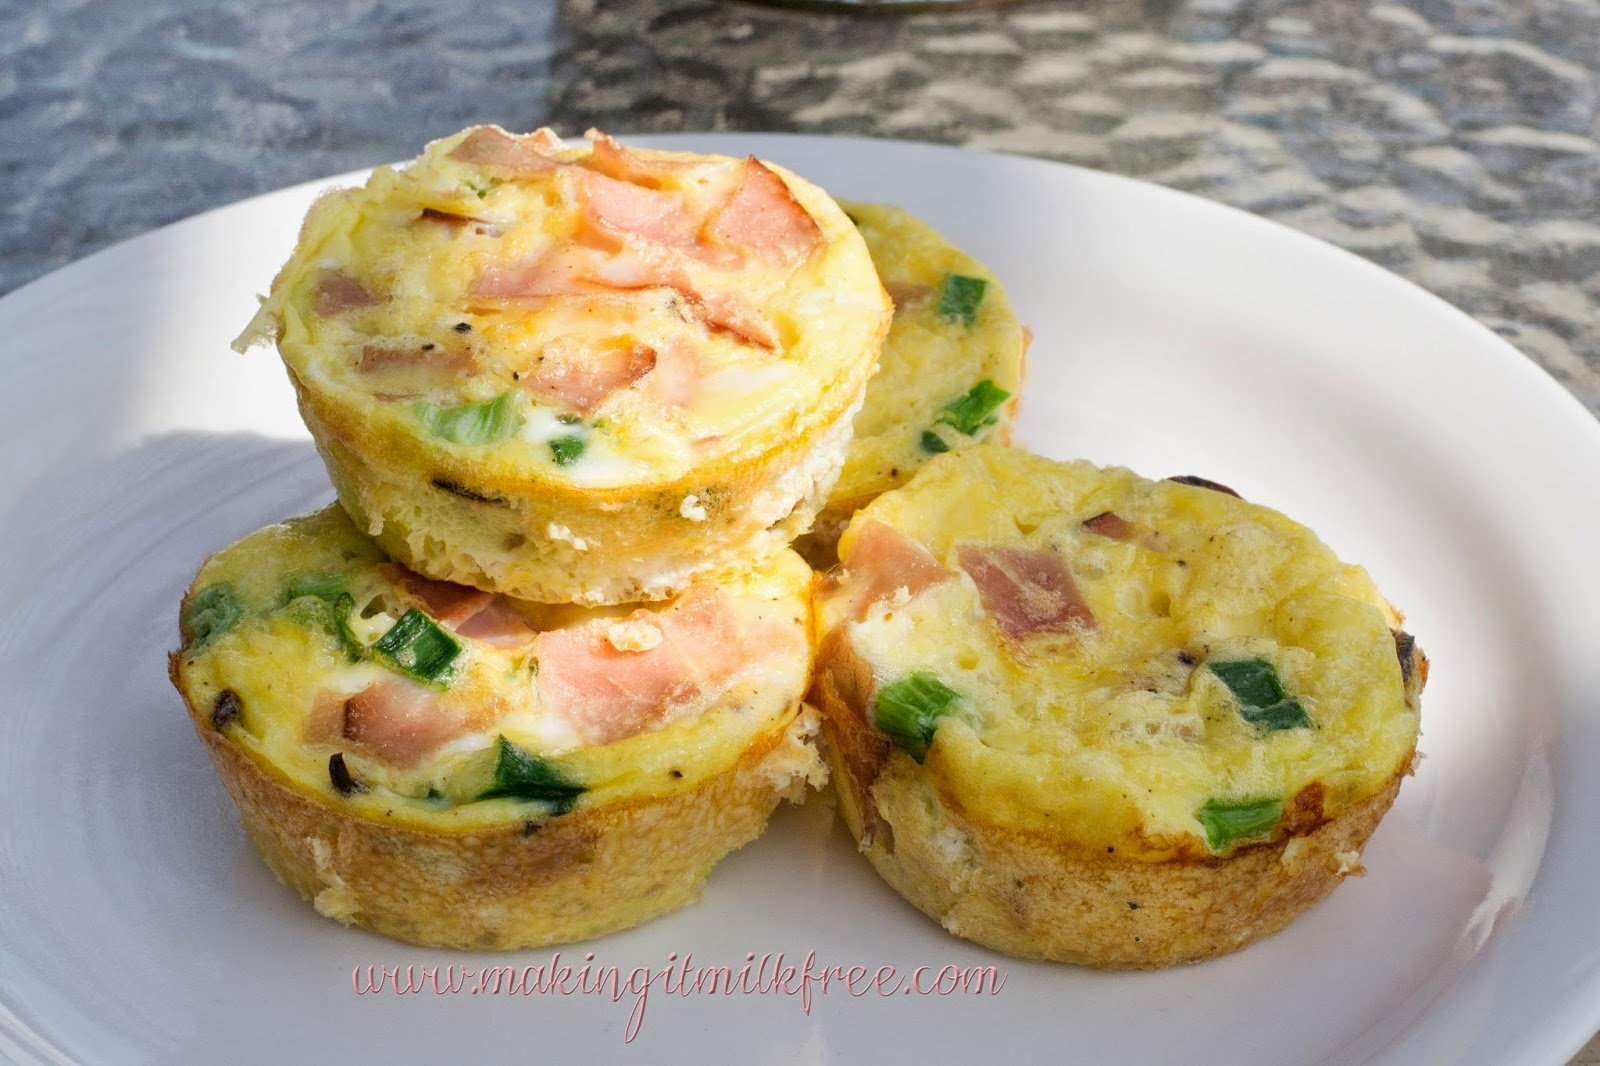 #glutenfree #dairyfree #miniquiche #easter #brunch